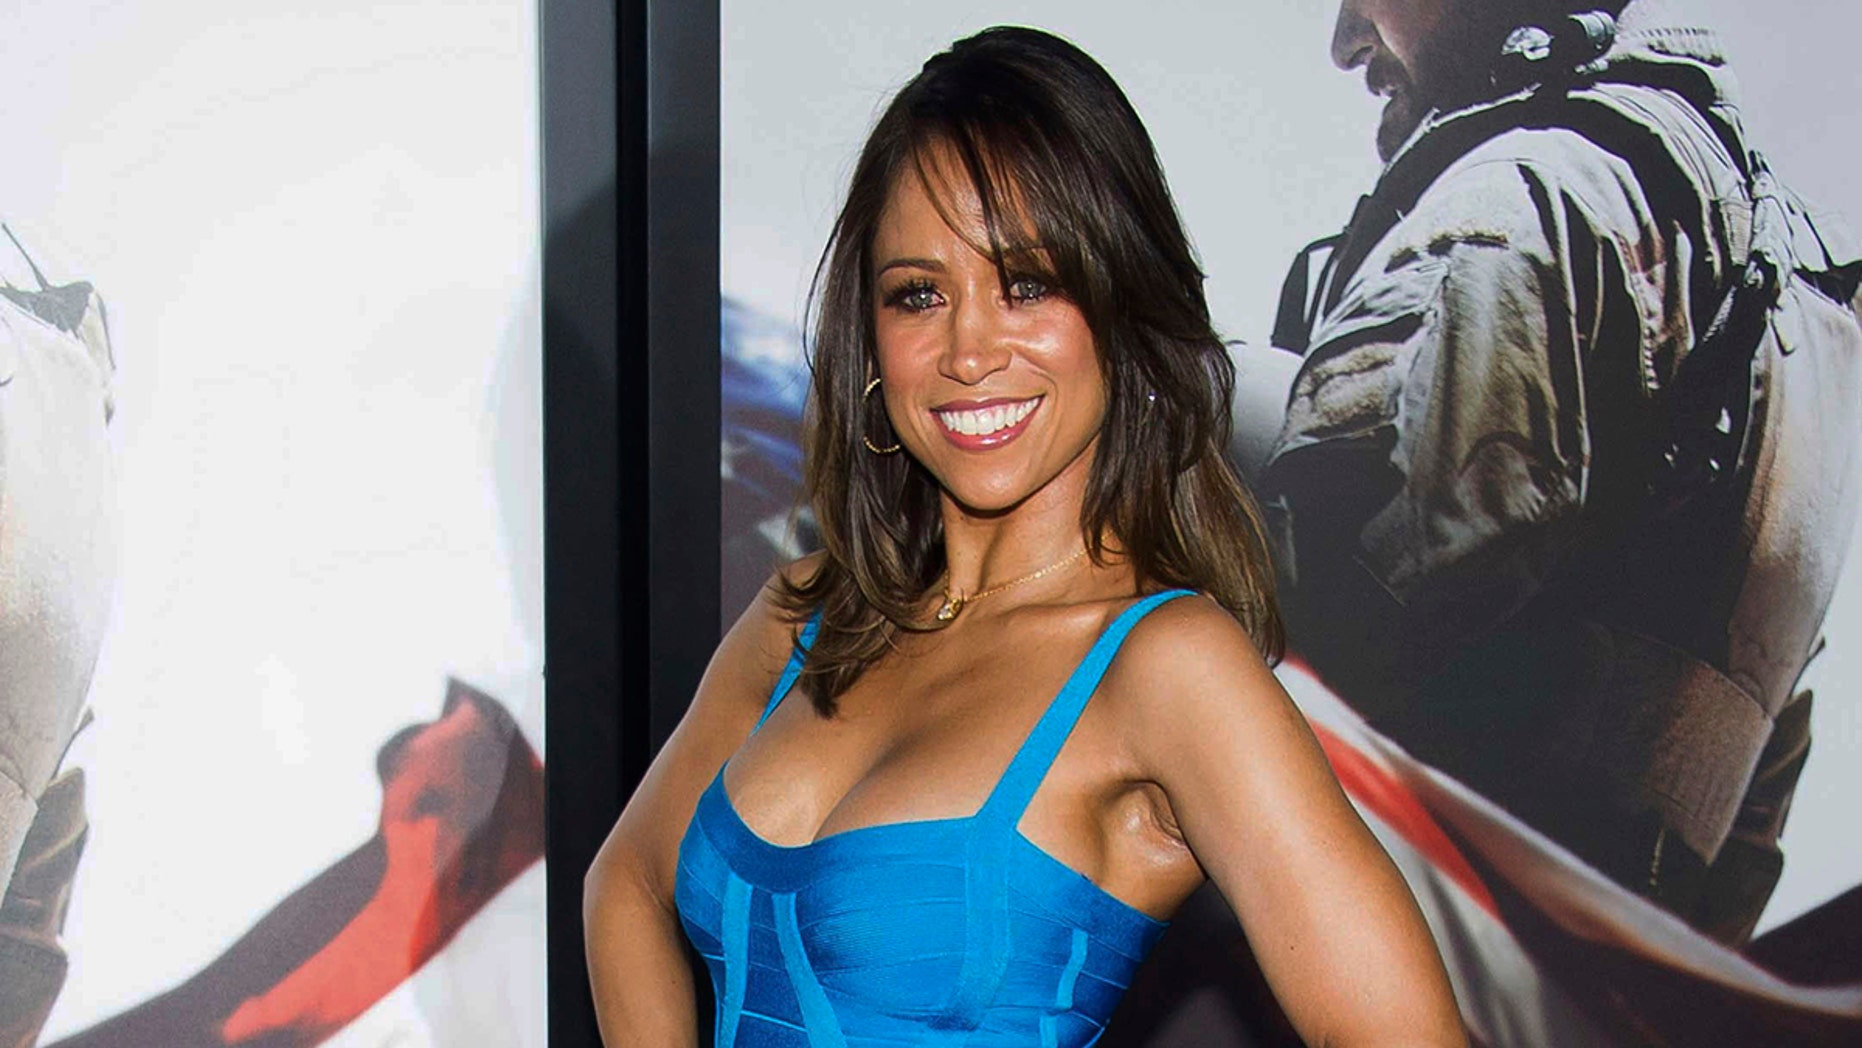 """FILE - In this Dec. 15, 2014, file photo, Stacey Dash attends the """"American Sniper"""" premiere in New York. Dash, the actress turned conservative political commentator, filed paperwork on Monday, Feb. 26, 2018, to run for a congressional seat in Southern California. (Photo by Charles Sykes/Invision/AP, File)"""